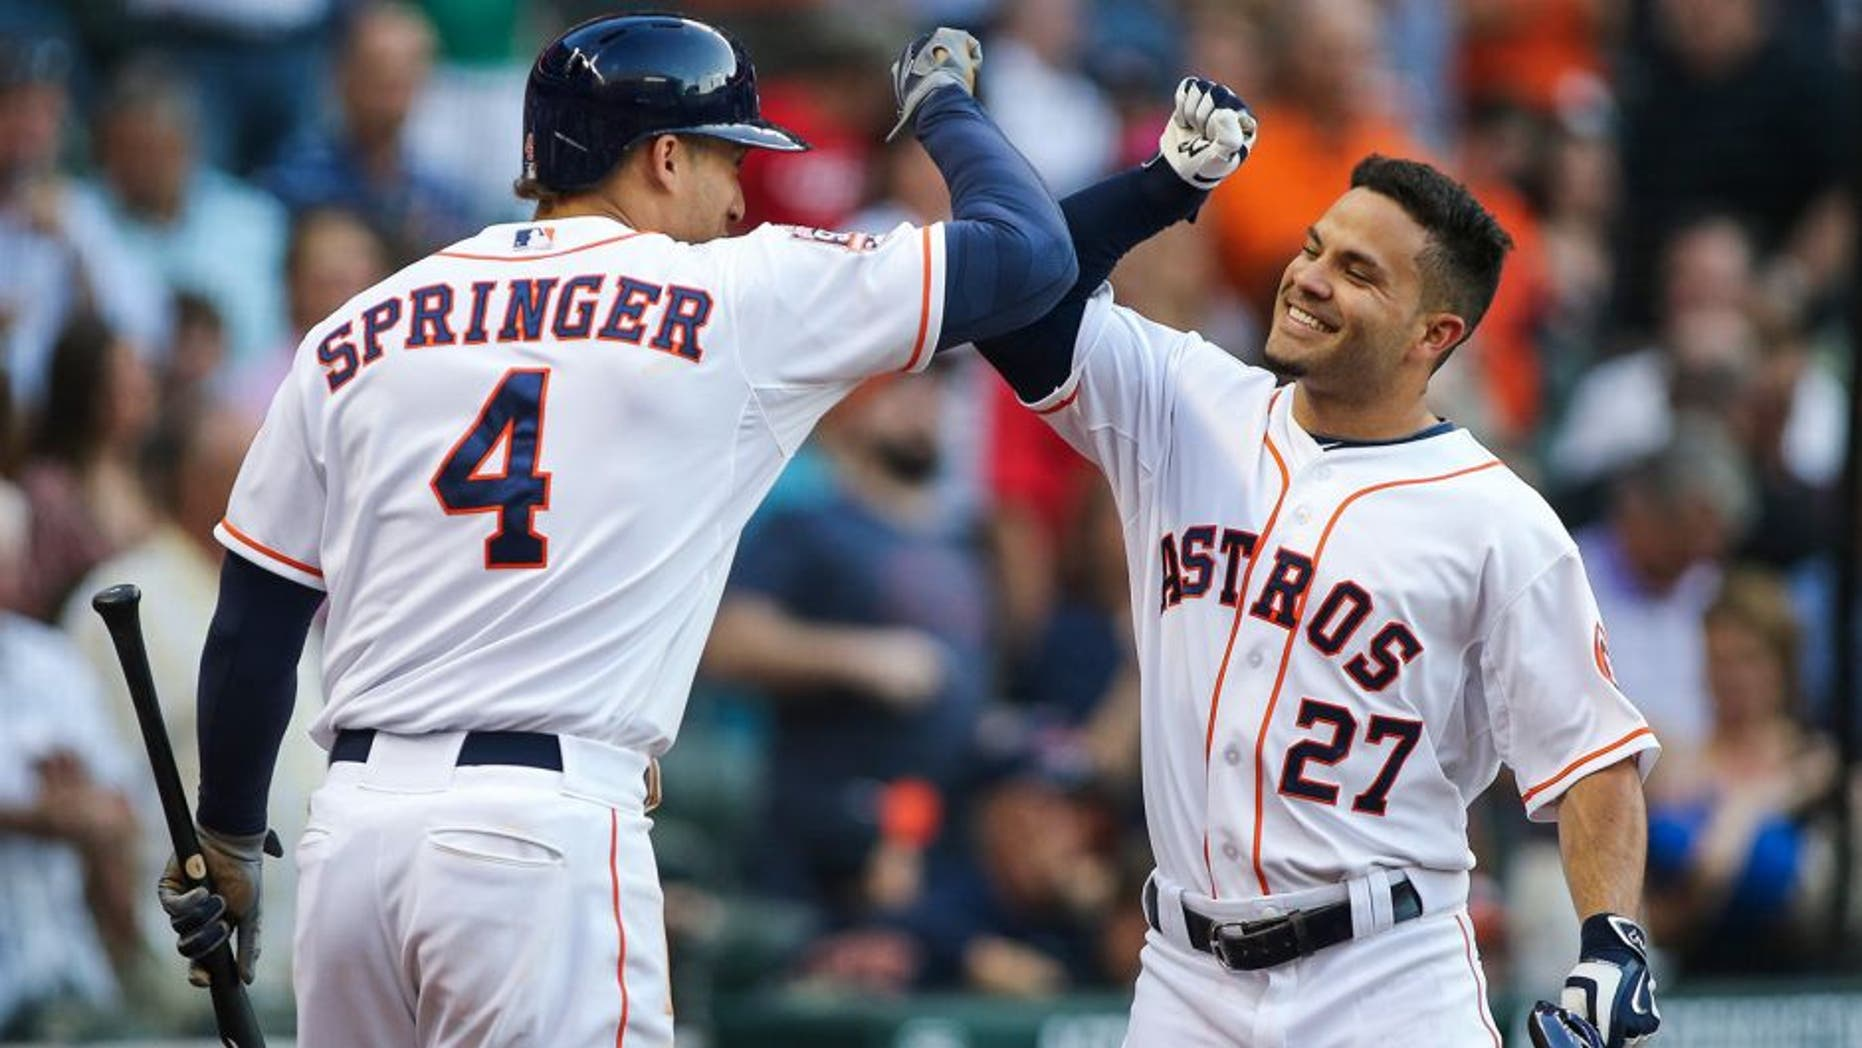 May 2, 2015; Houston, TX, USA; Houston Astros second baseman Jose Altuve (27) celebrates with right fielder George Springer (4) after hitting a home run during the fourth inning against the Seattle Mariners at Minute Maid Park. Mandatory Credit: Troy Taormina-USA TODAY Sports